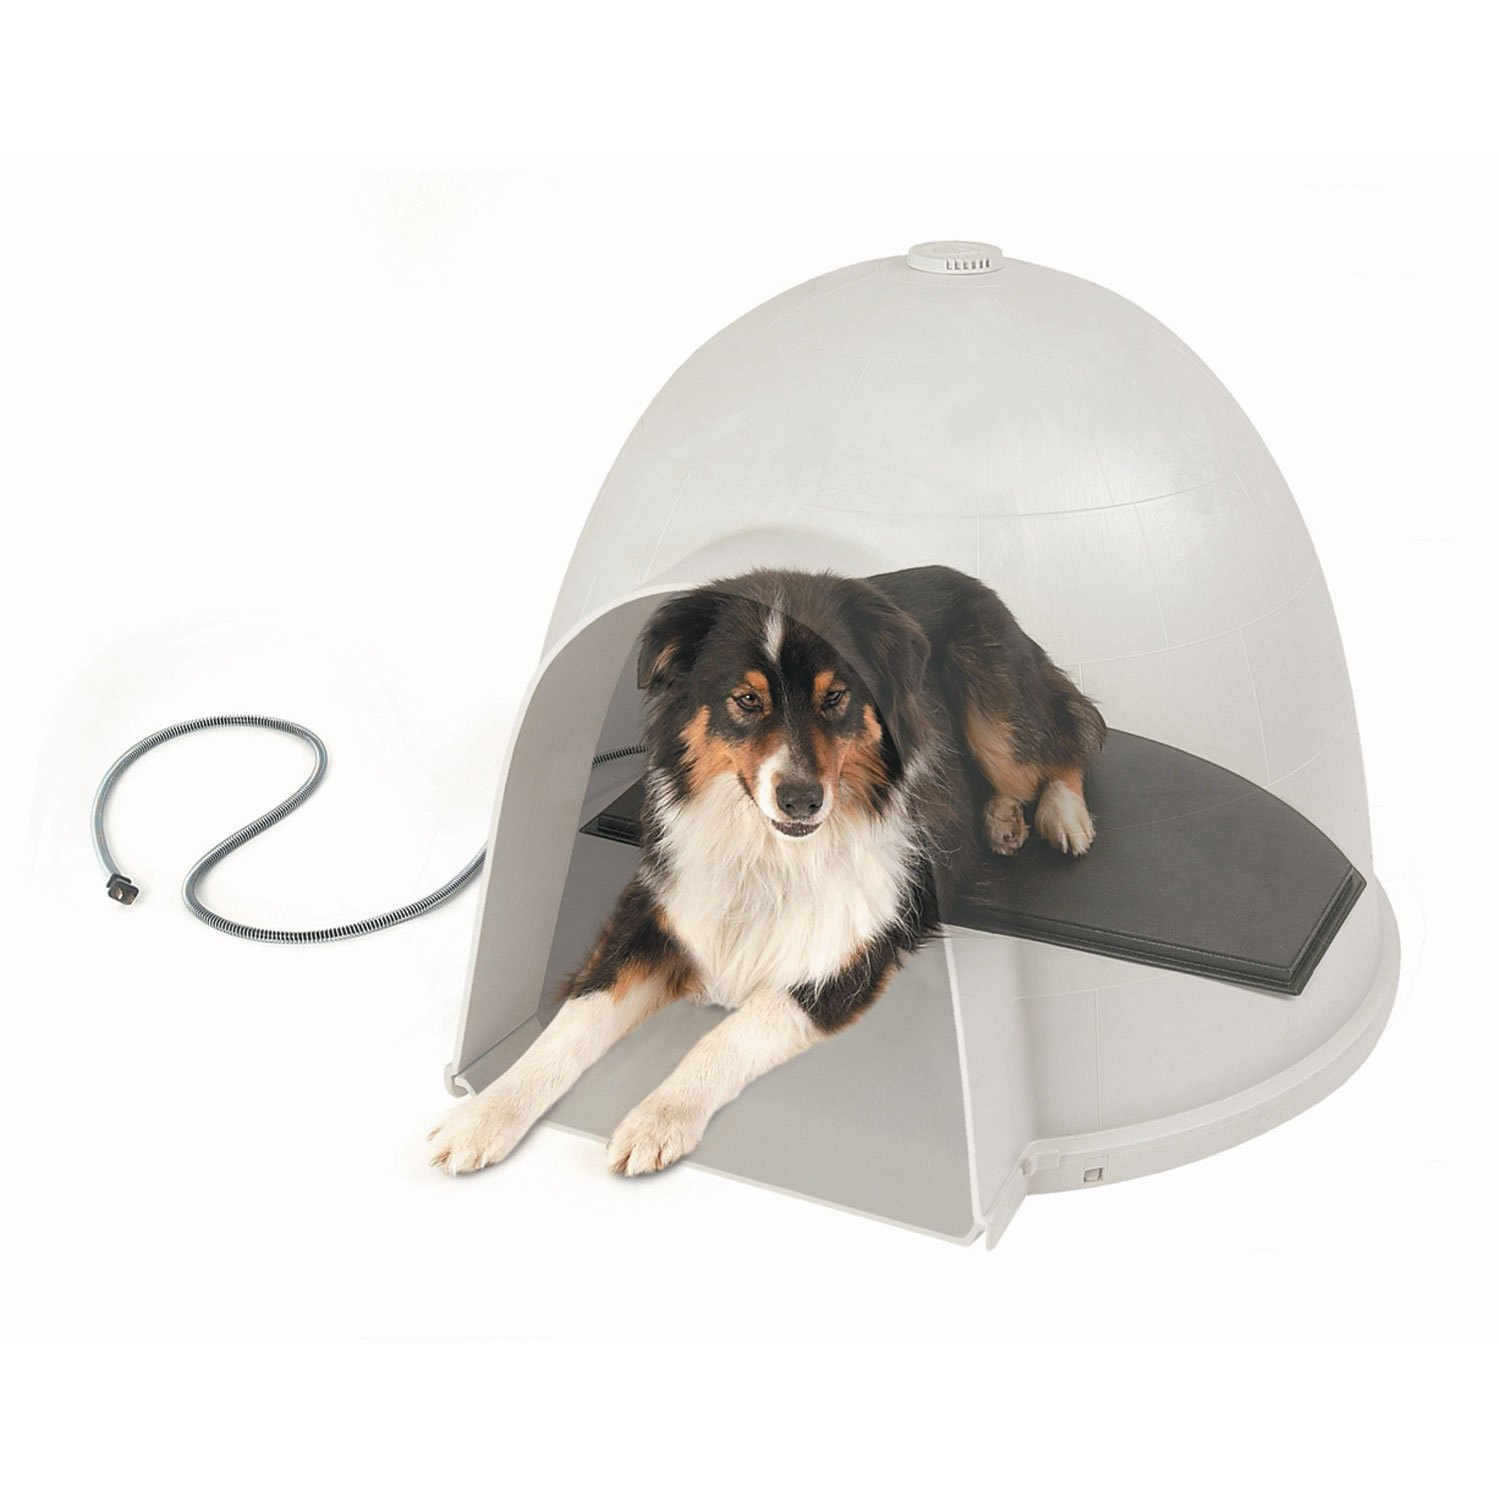 K&H Pet Products Lectro-Kennel Igloo Style Outdoor Heated Pad Large Black 17.5'' x 30'' 80W (Igloo house not included) by K&H Pet Products